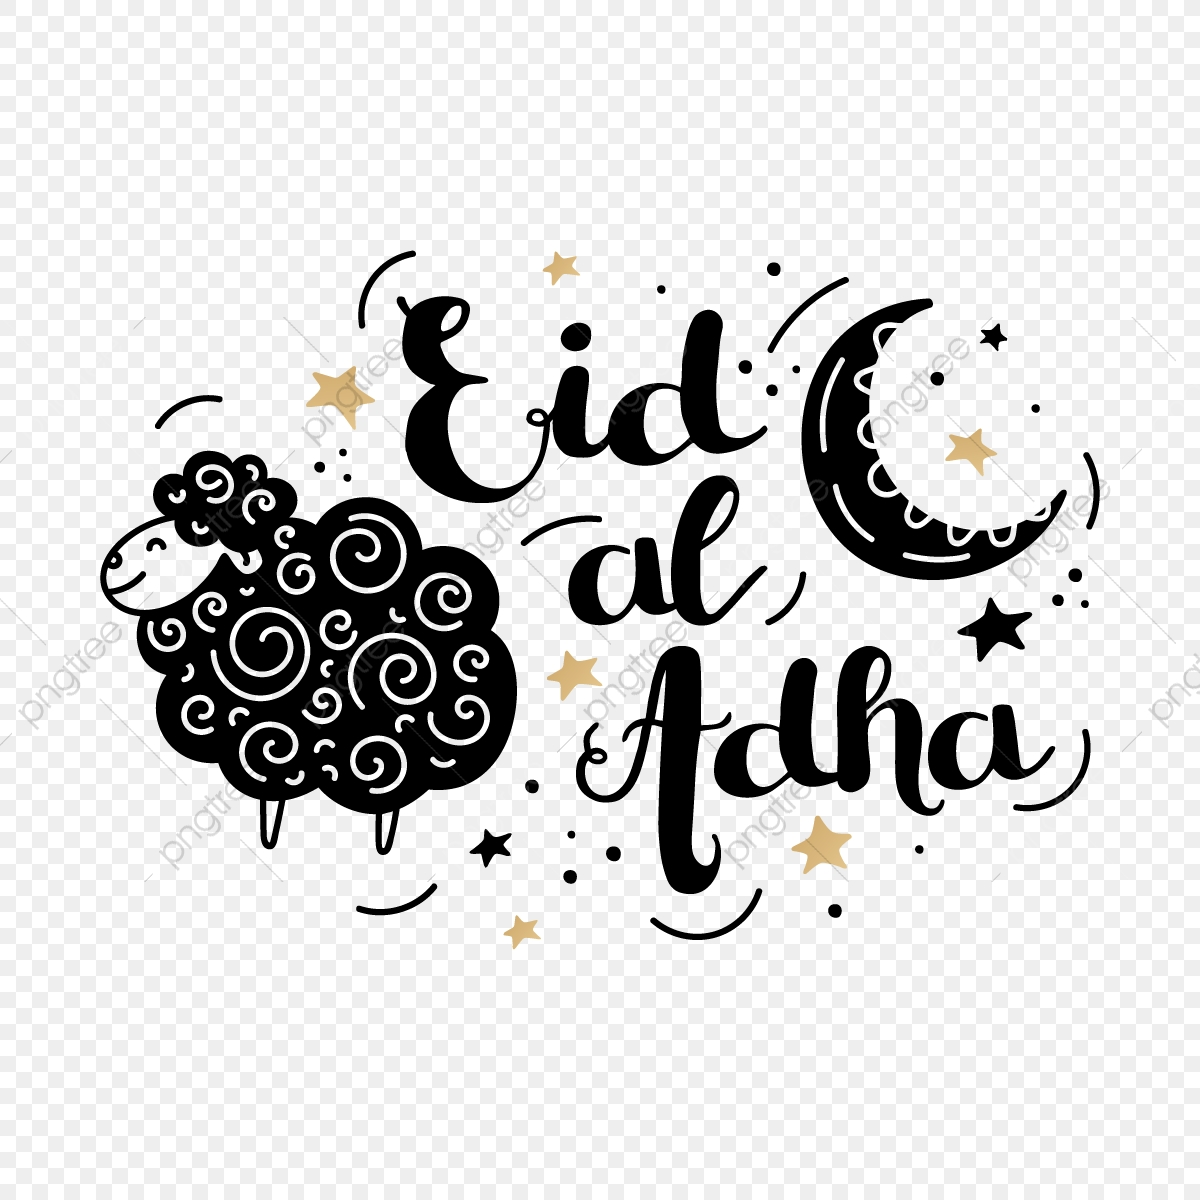 Eid Al Adha Png Images Vector And Psd Files Free Download On Pngtree